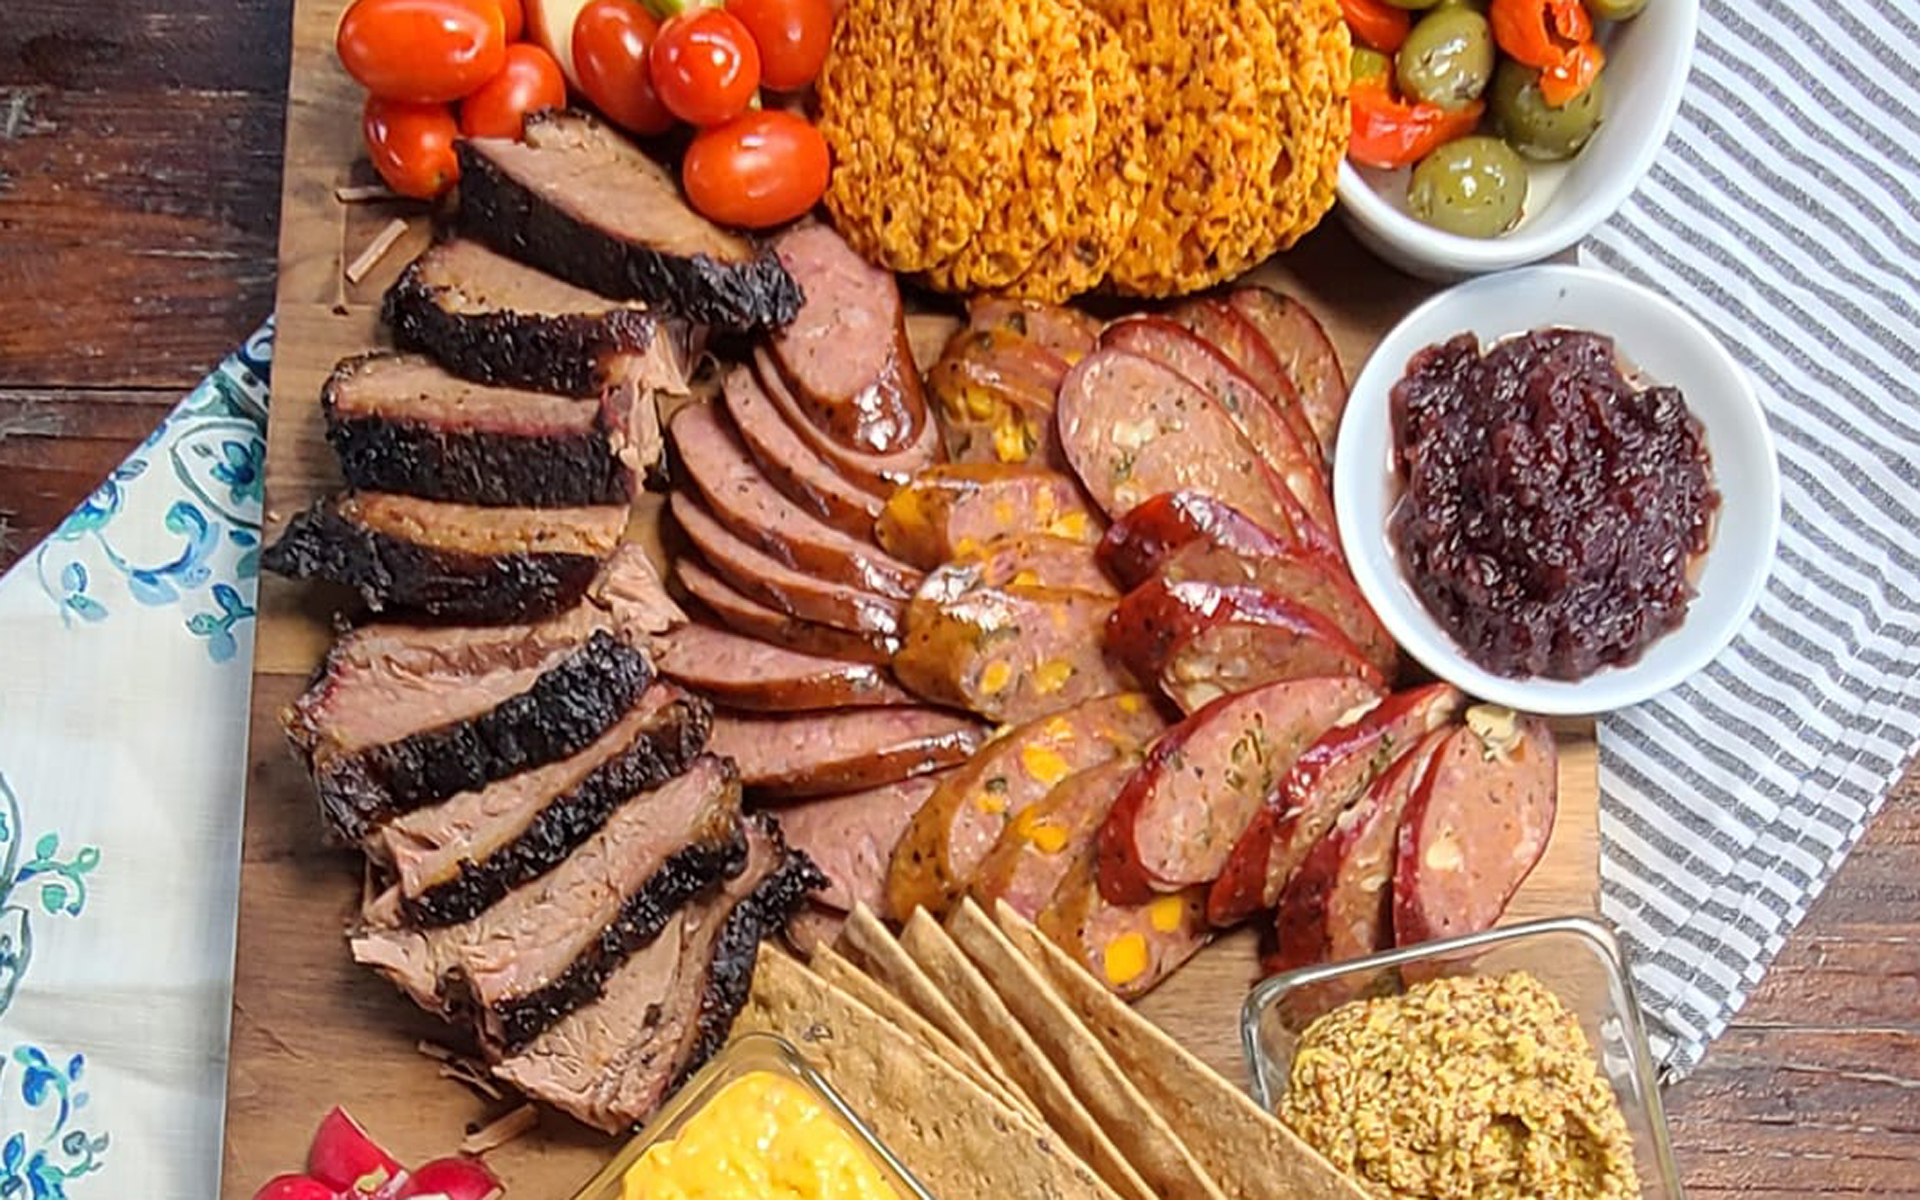 Dickey's Barbecue Pit in Haslet, TX at Restaurant.com